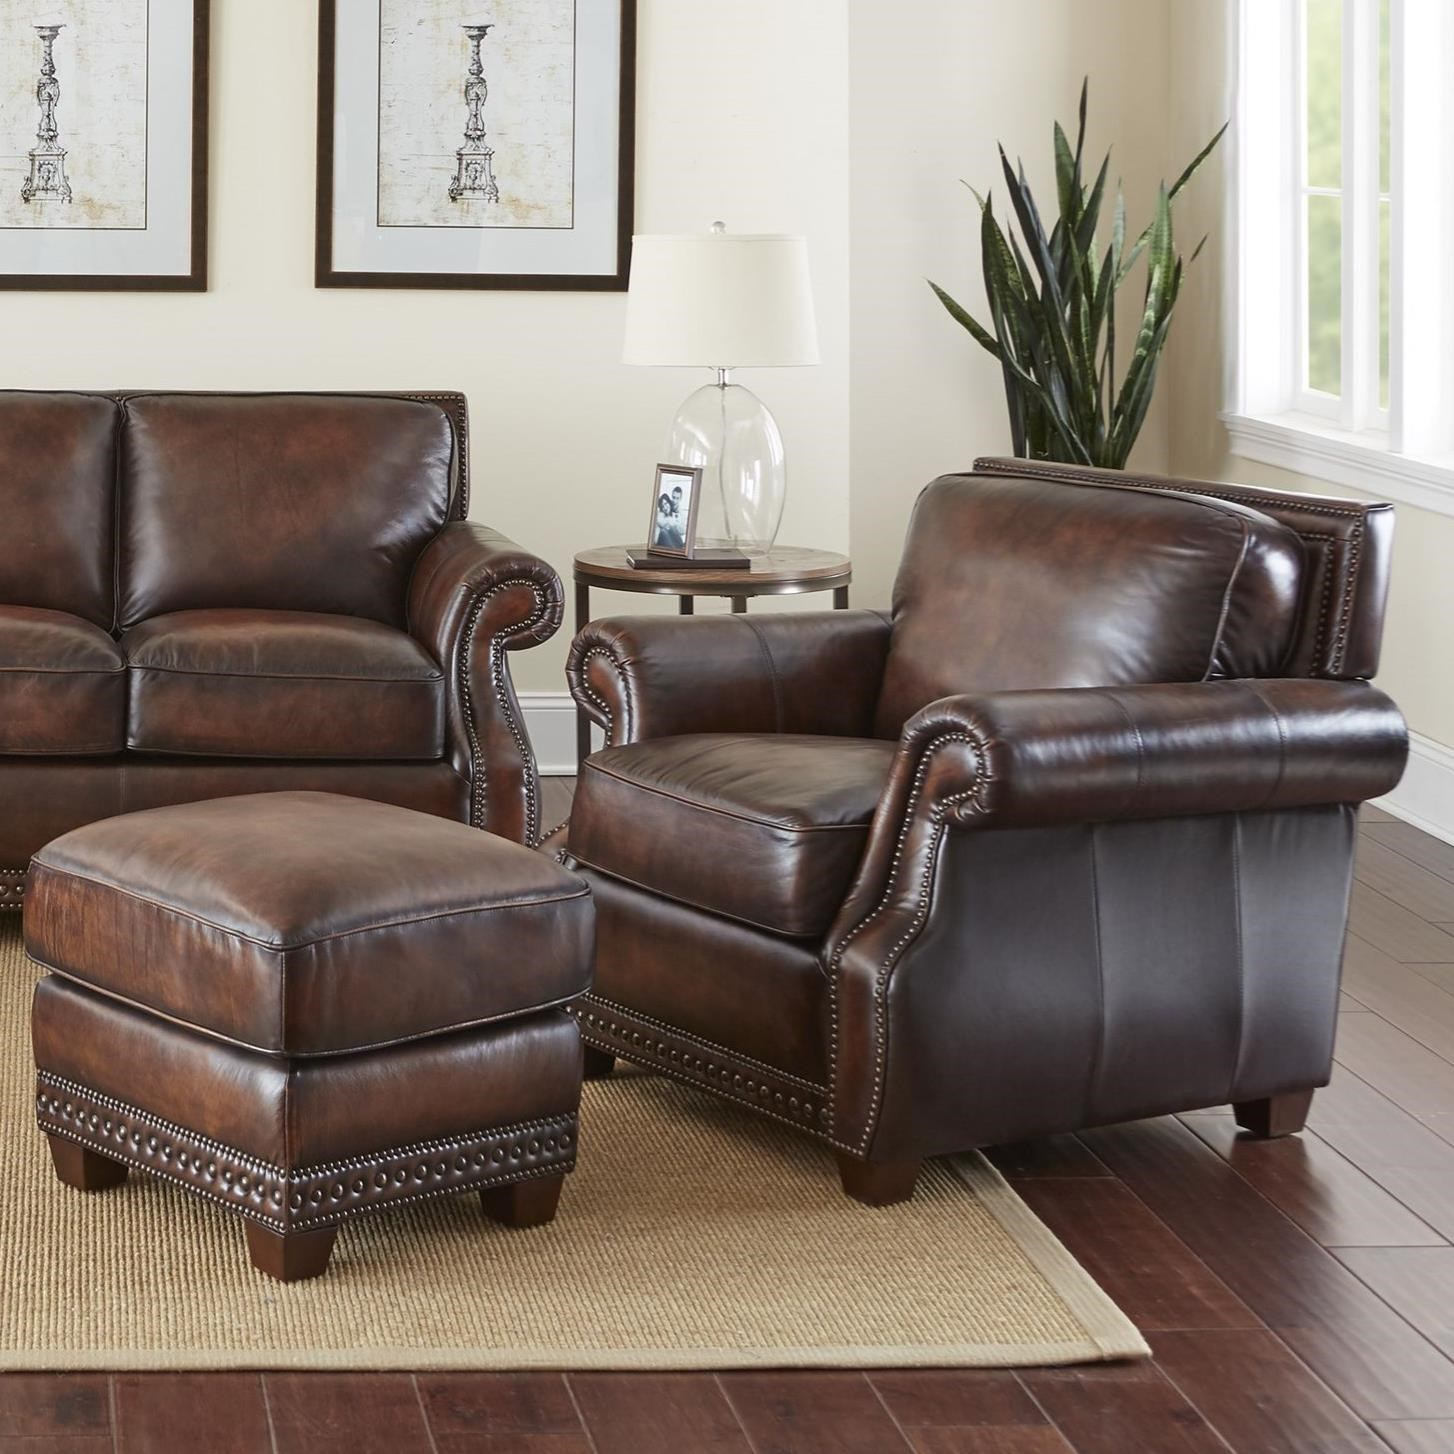 leather chair ottoman set cosco card table and chairs jamestown traditional with nailheads